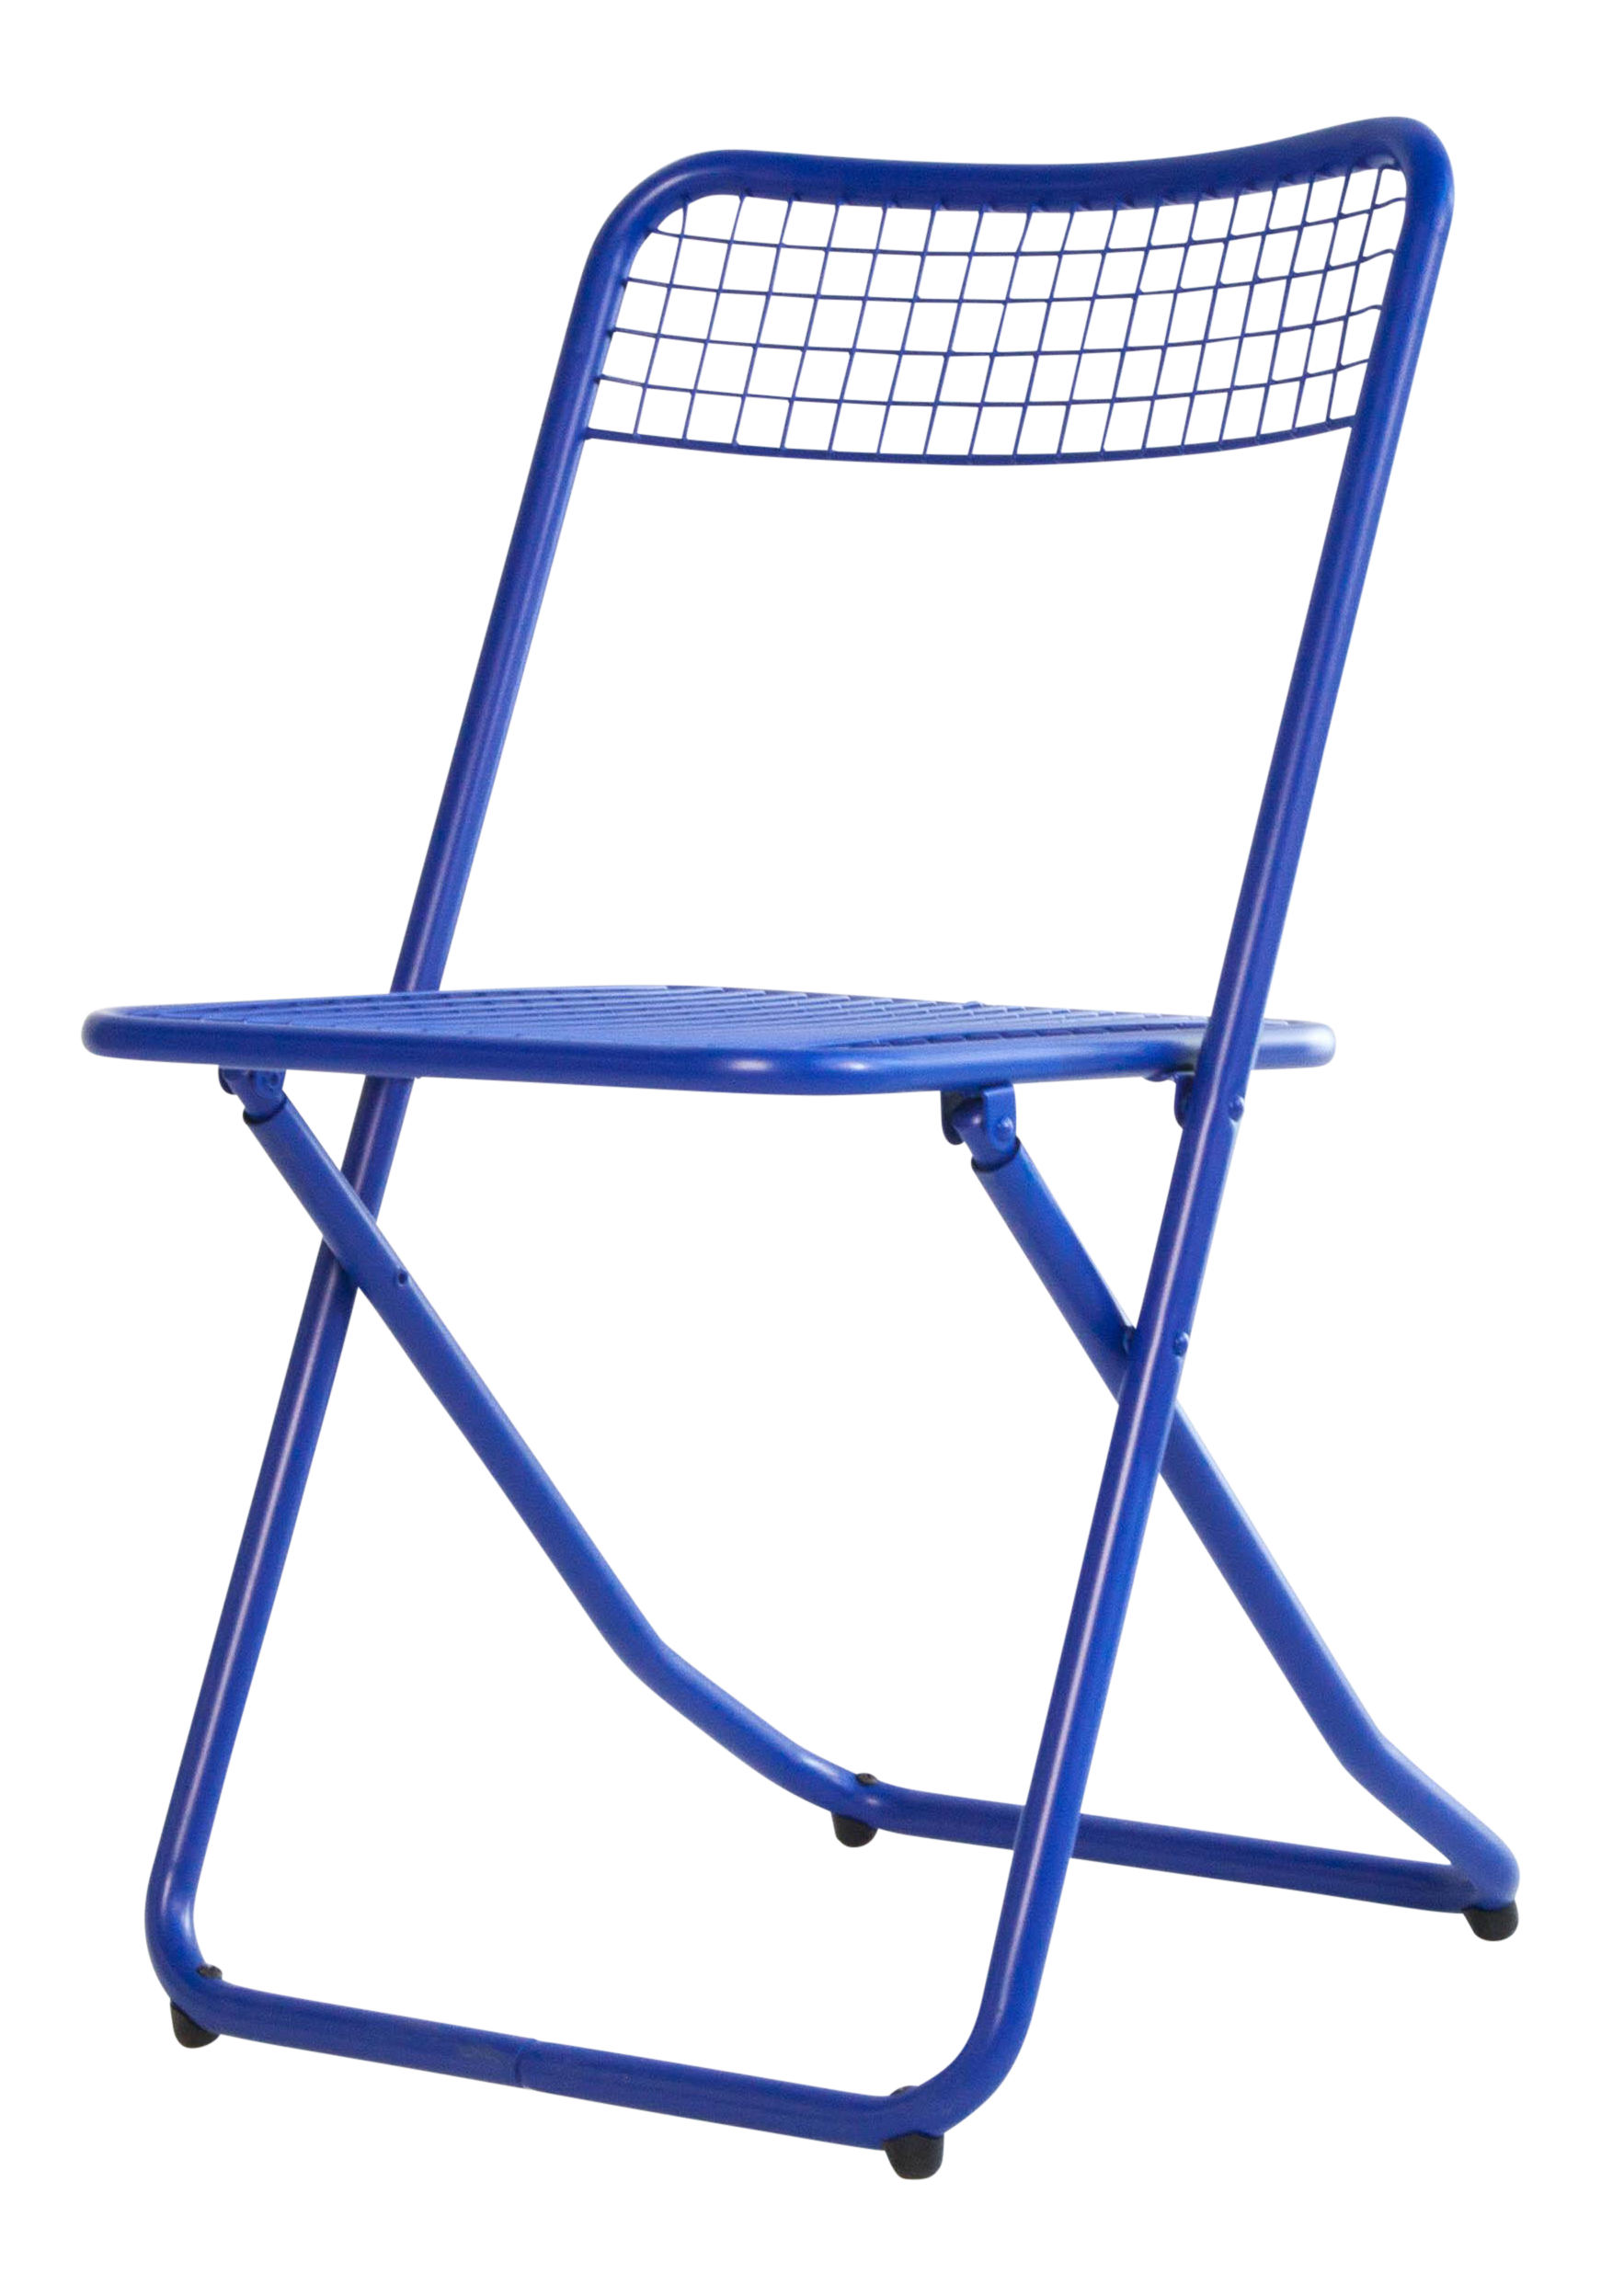 New Blue Cobalt White Metal Folding Chair By Federico Giner For Houtique Chairish